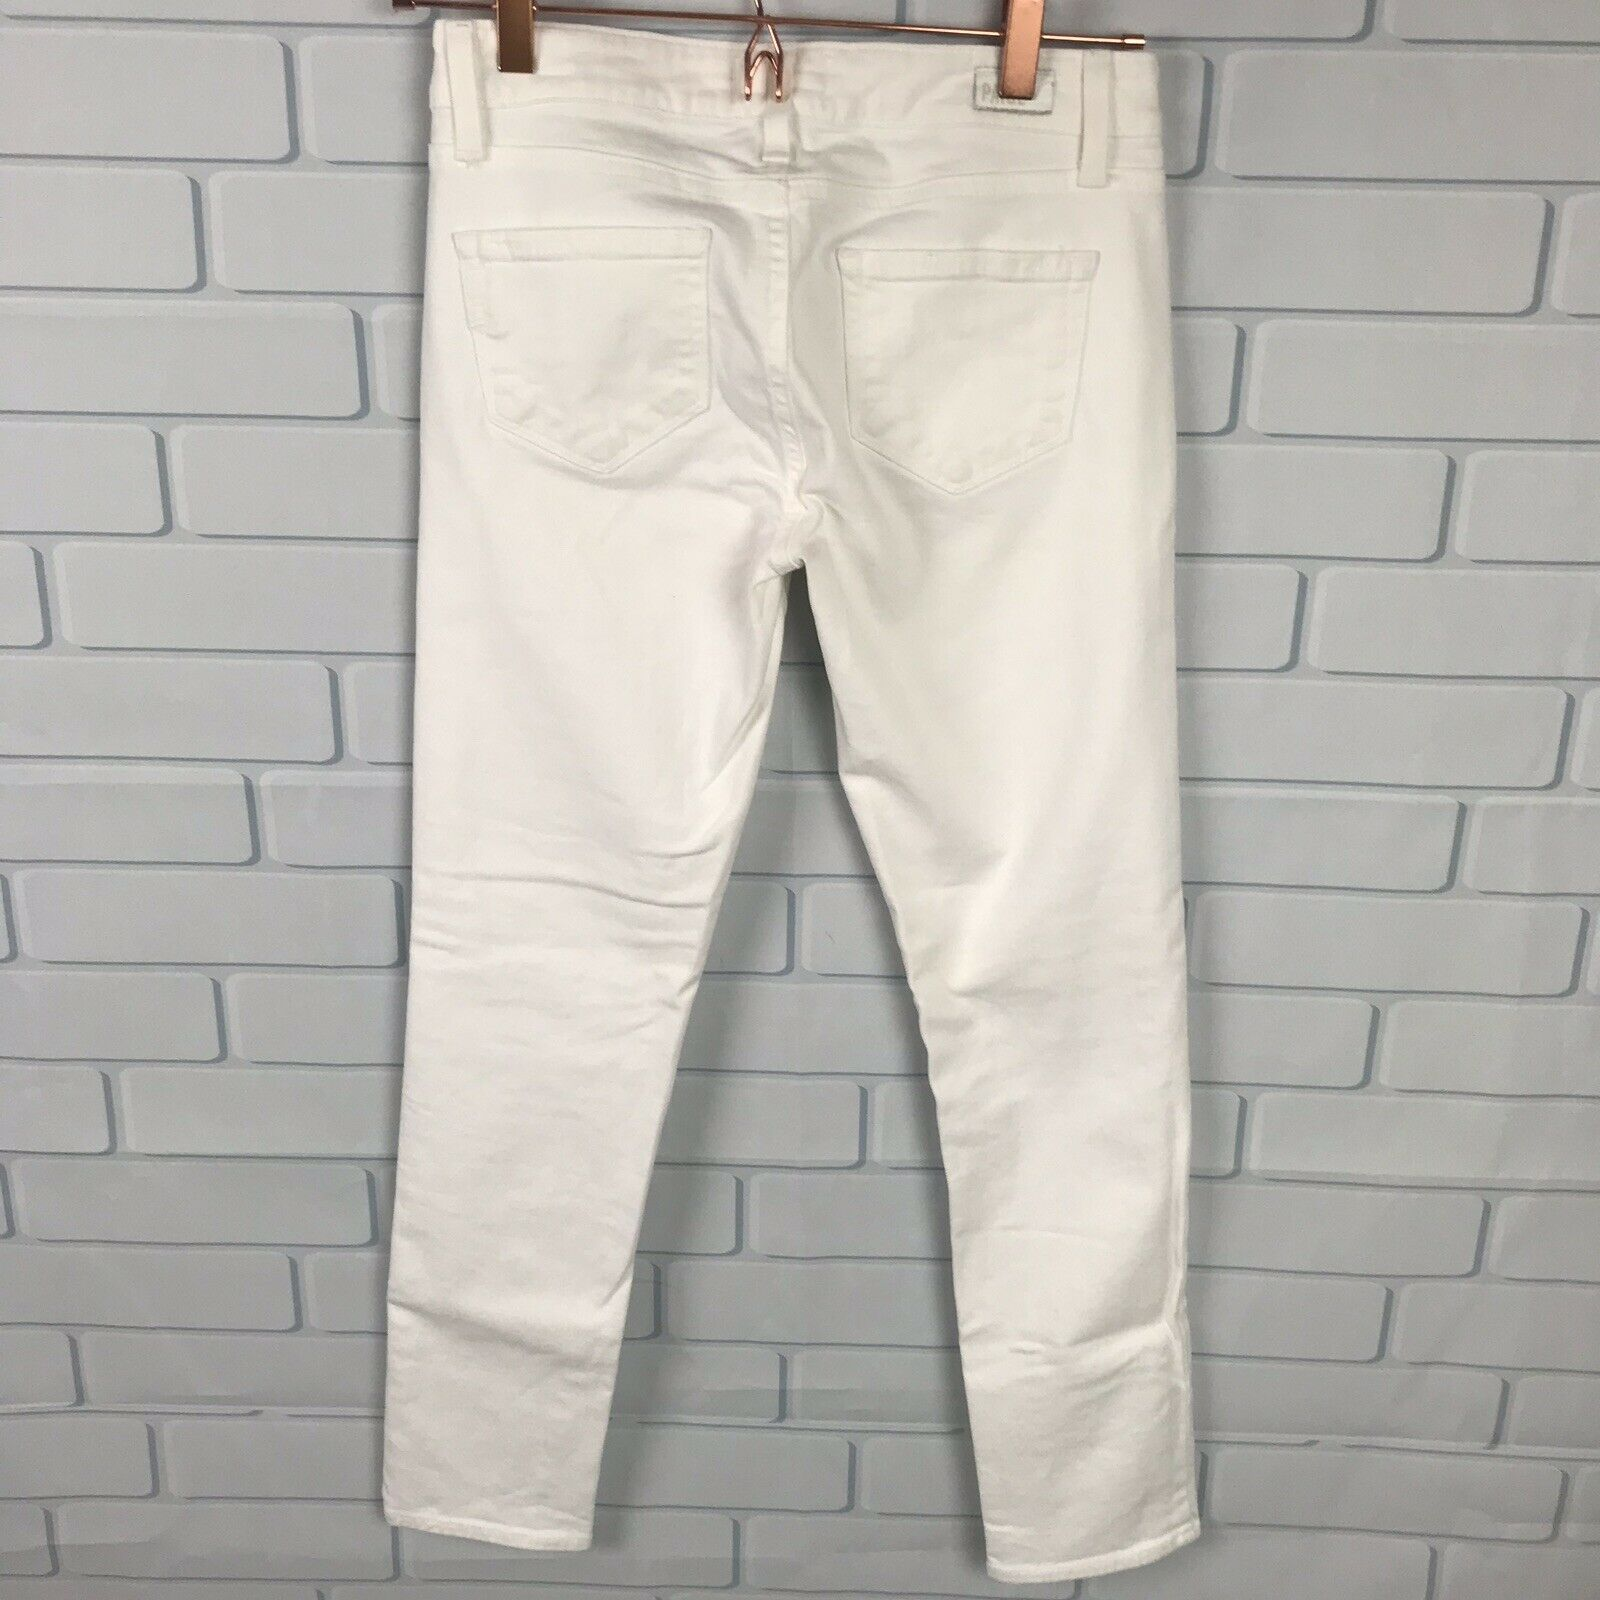 PAIGE Size 26 Denim Skyline Ankle Peg Skinny Jeans Off White 26x27